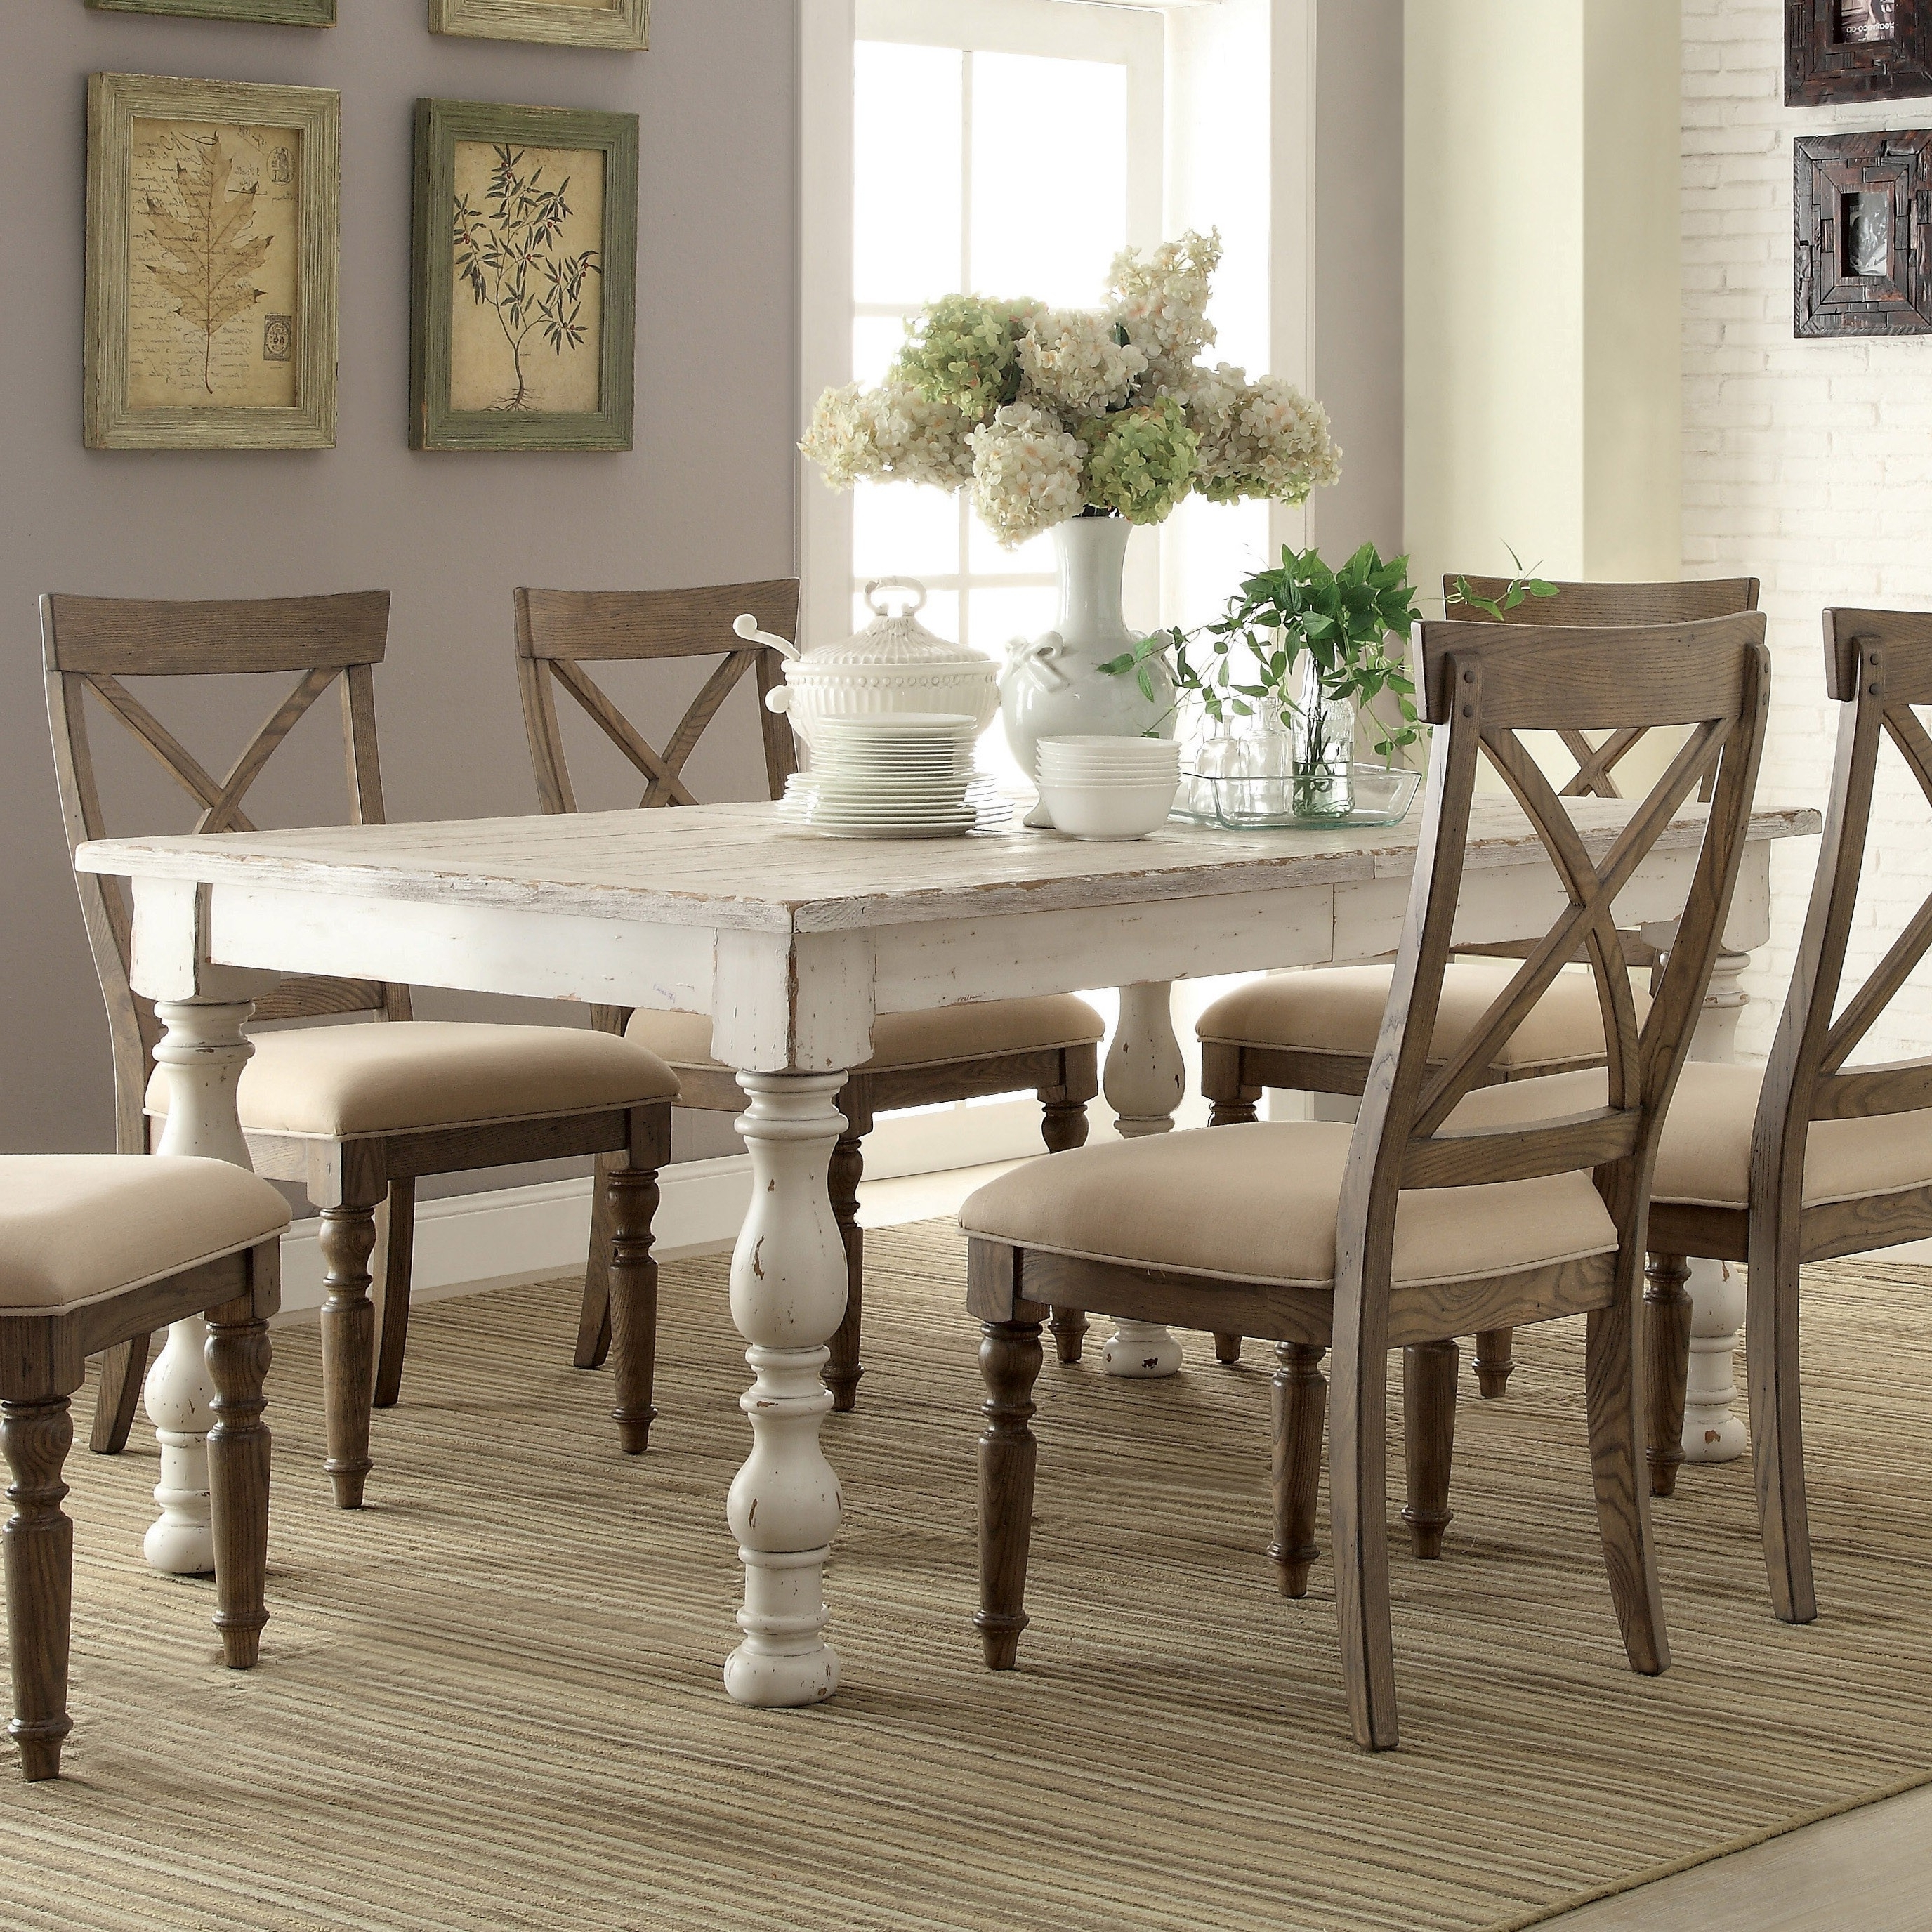 Dark Wood Dining Tables And Chairs for Fashionable High-End Dining Tables & Kitchen Table Sets